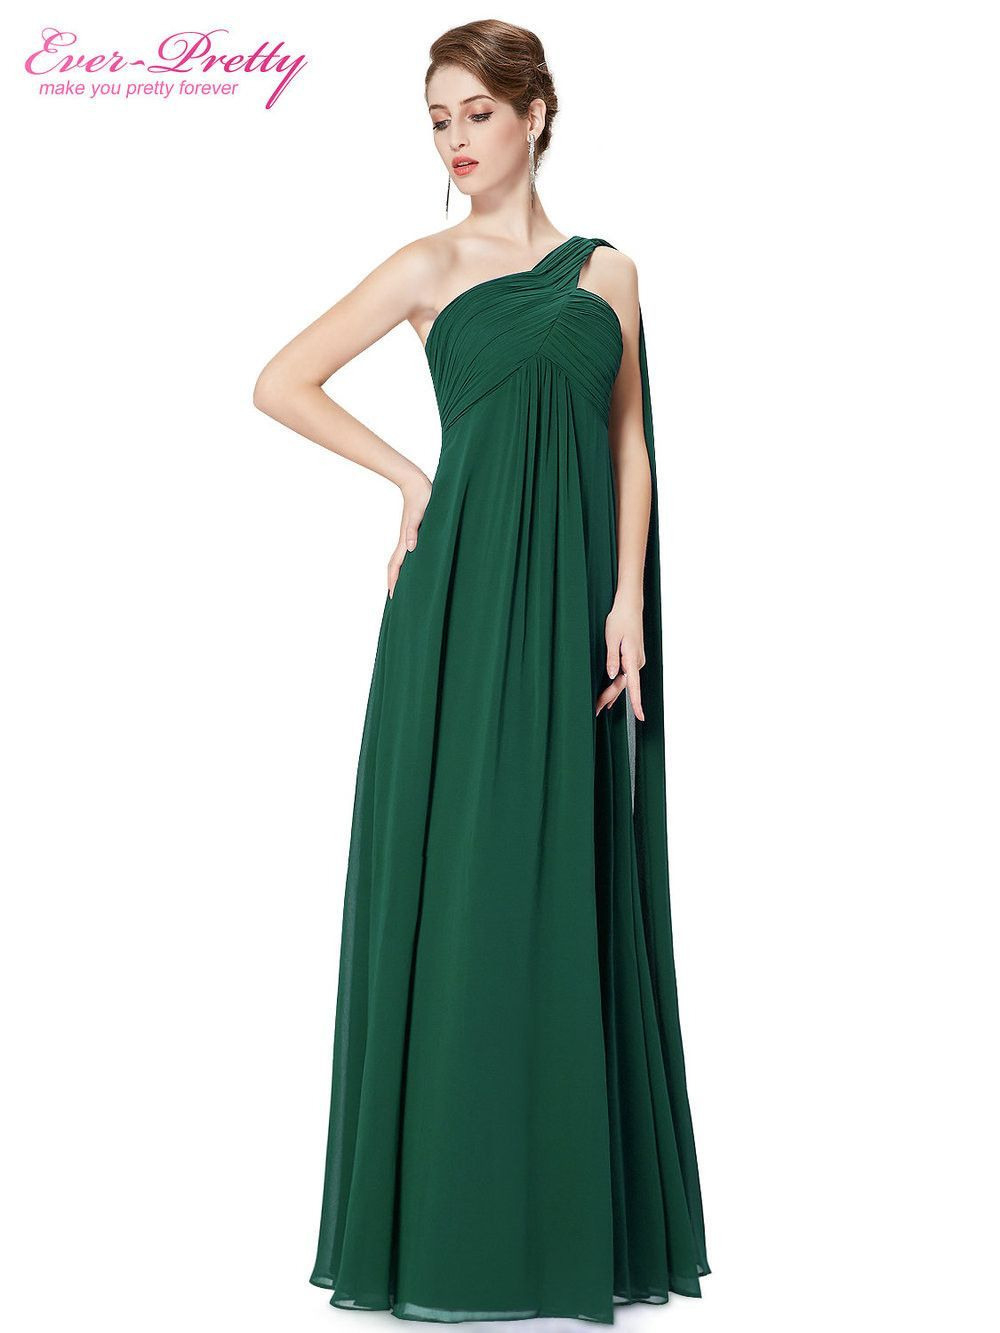 15 Großartig One Shoulder Abendkleid Stylish17 Schön One Shoulder Abendkleid Ärmel